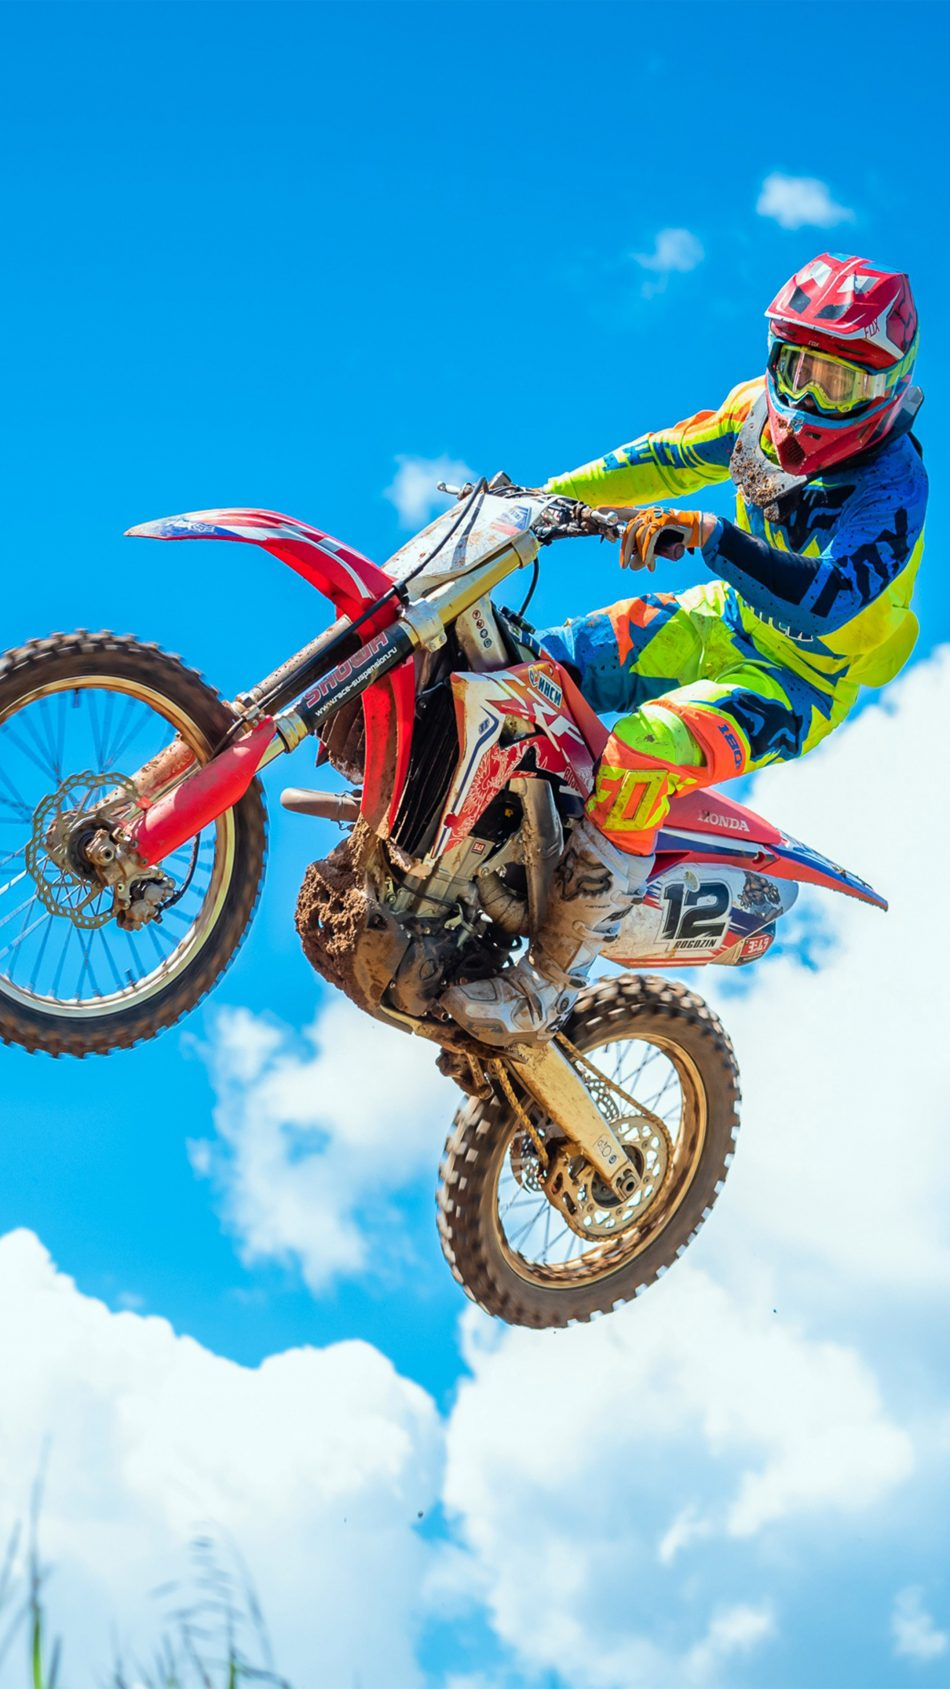 Motorcycle Motocross Sports 4K Ultra HD Mobile Wallpaper